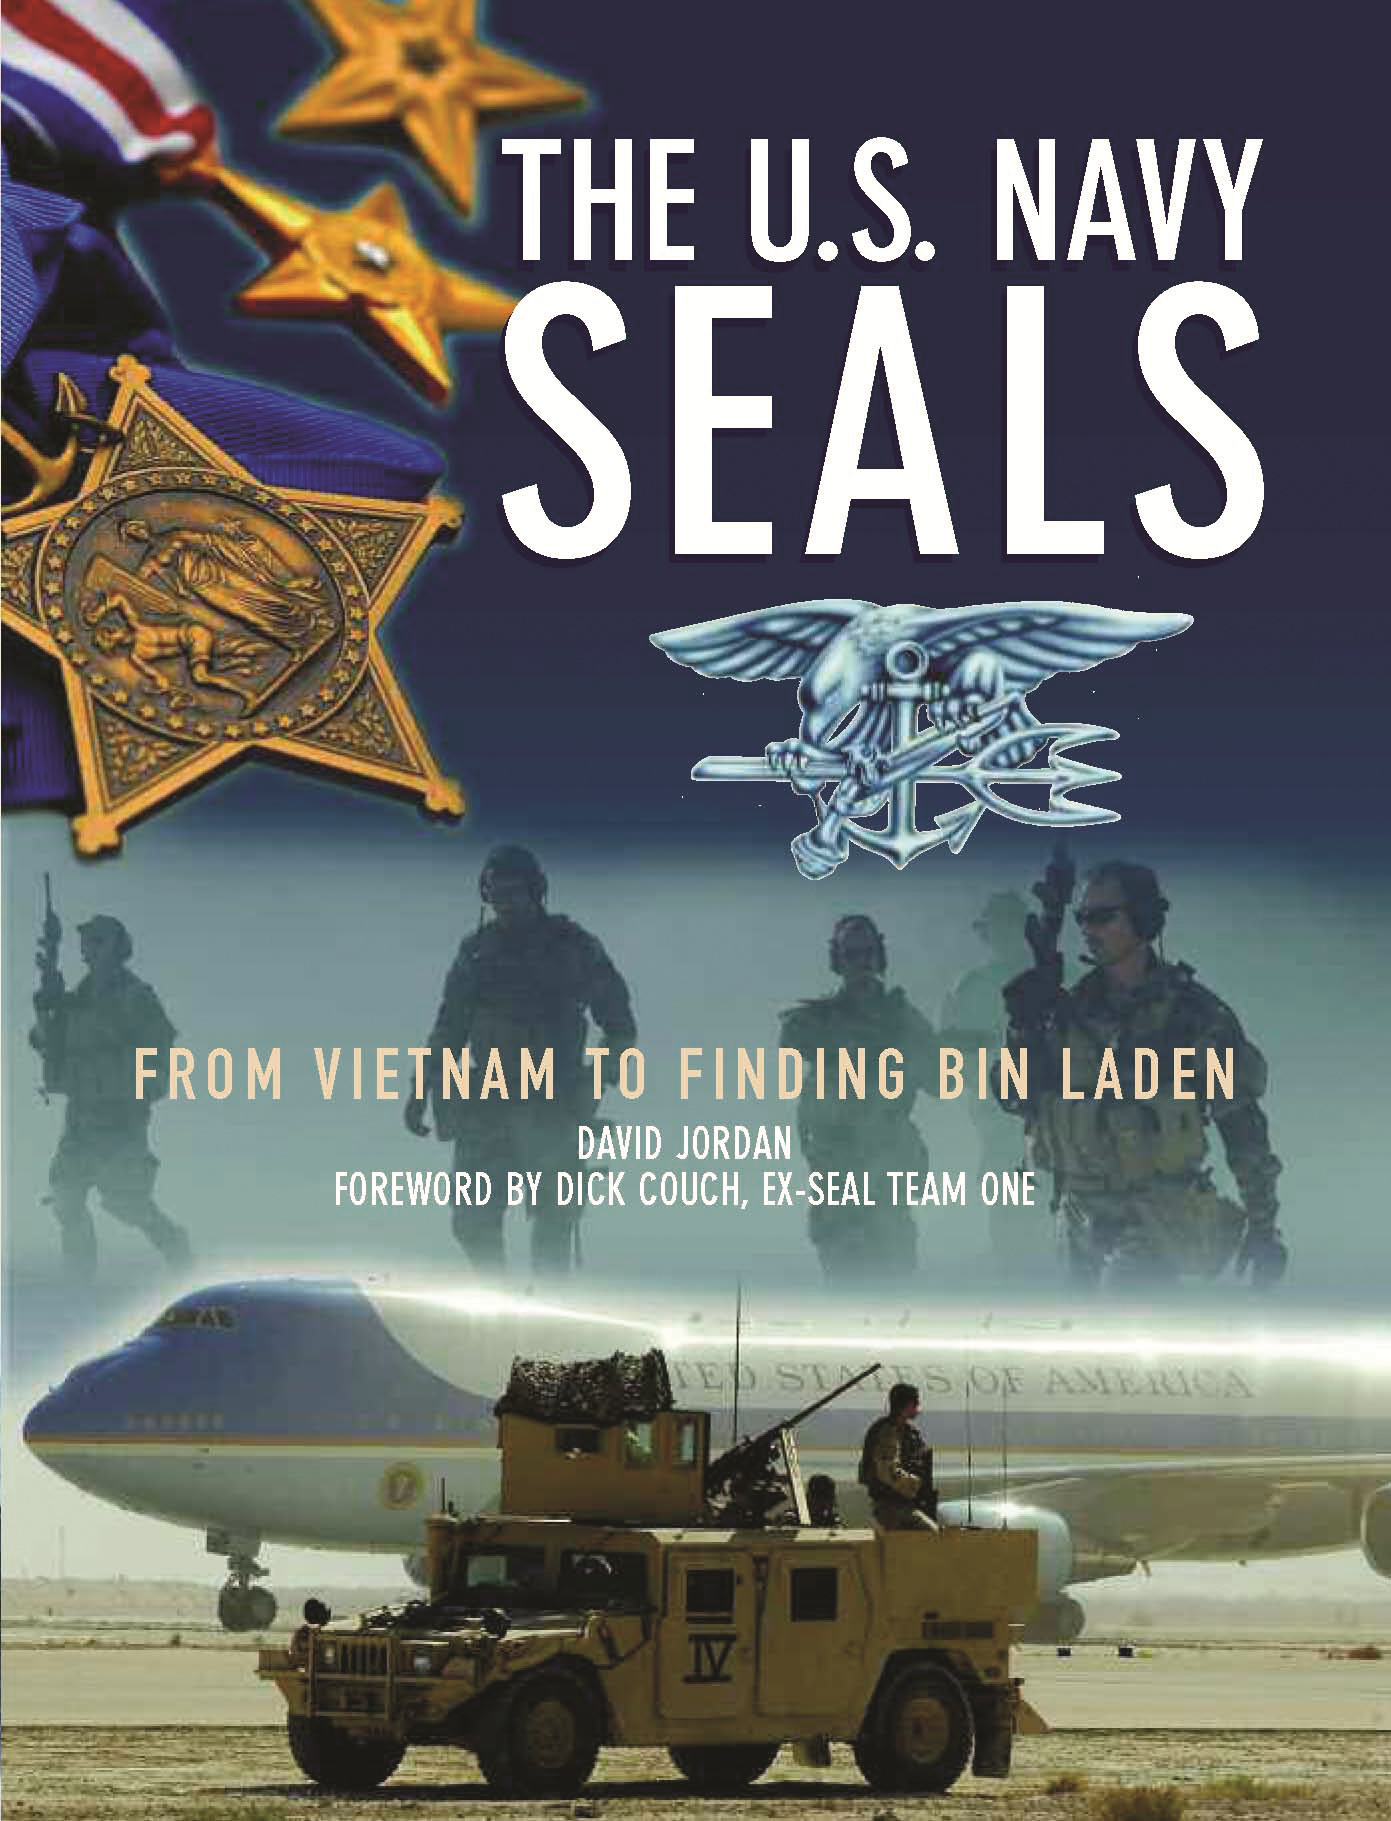 The U.S. Navy SEALS